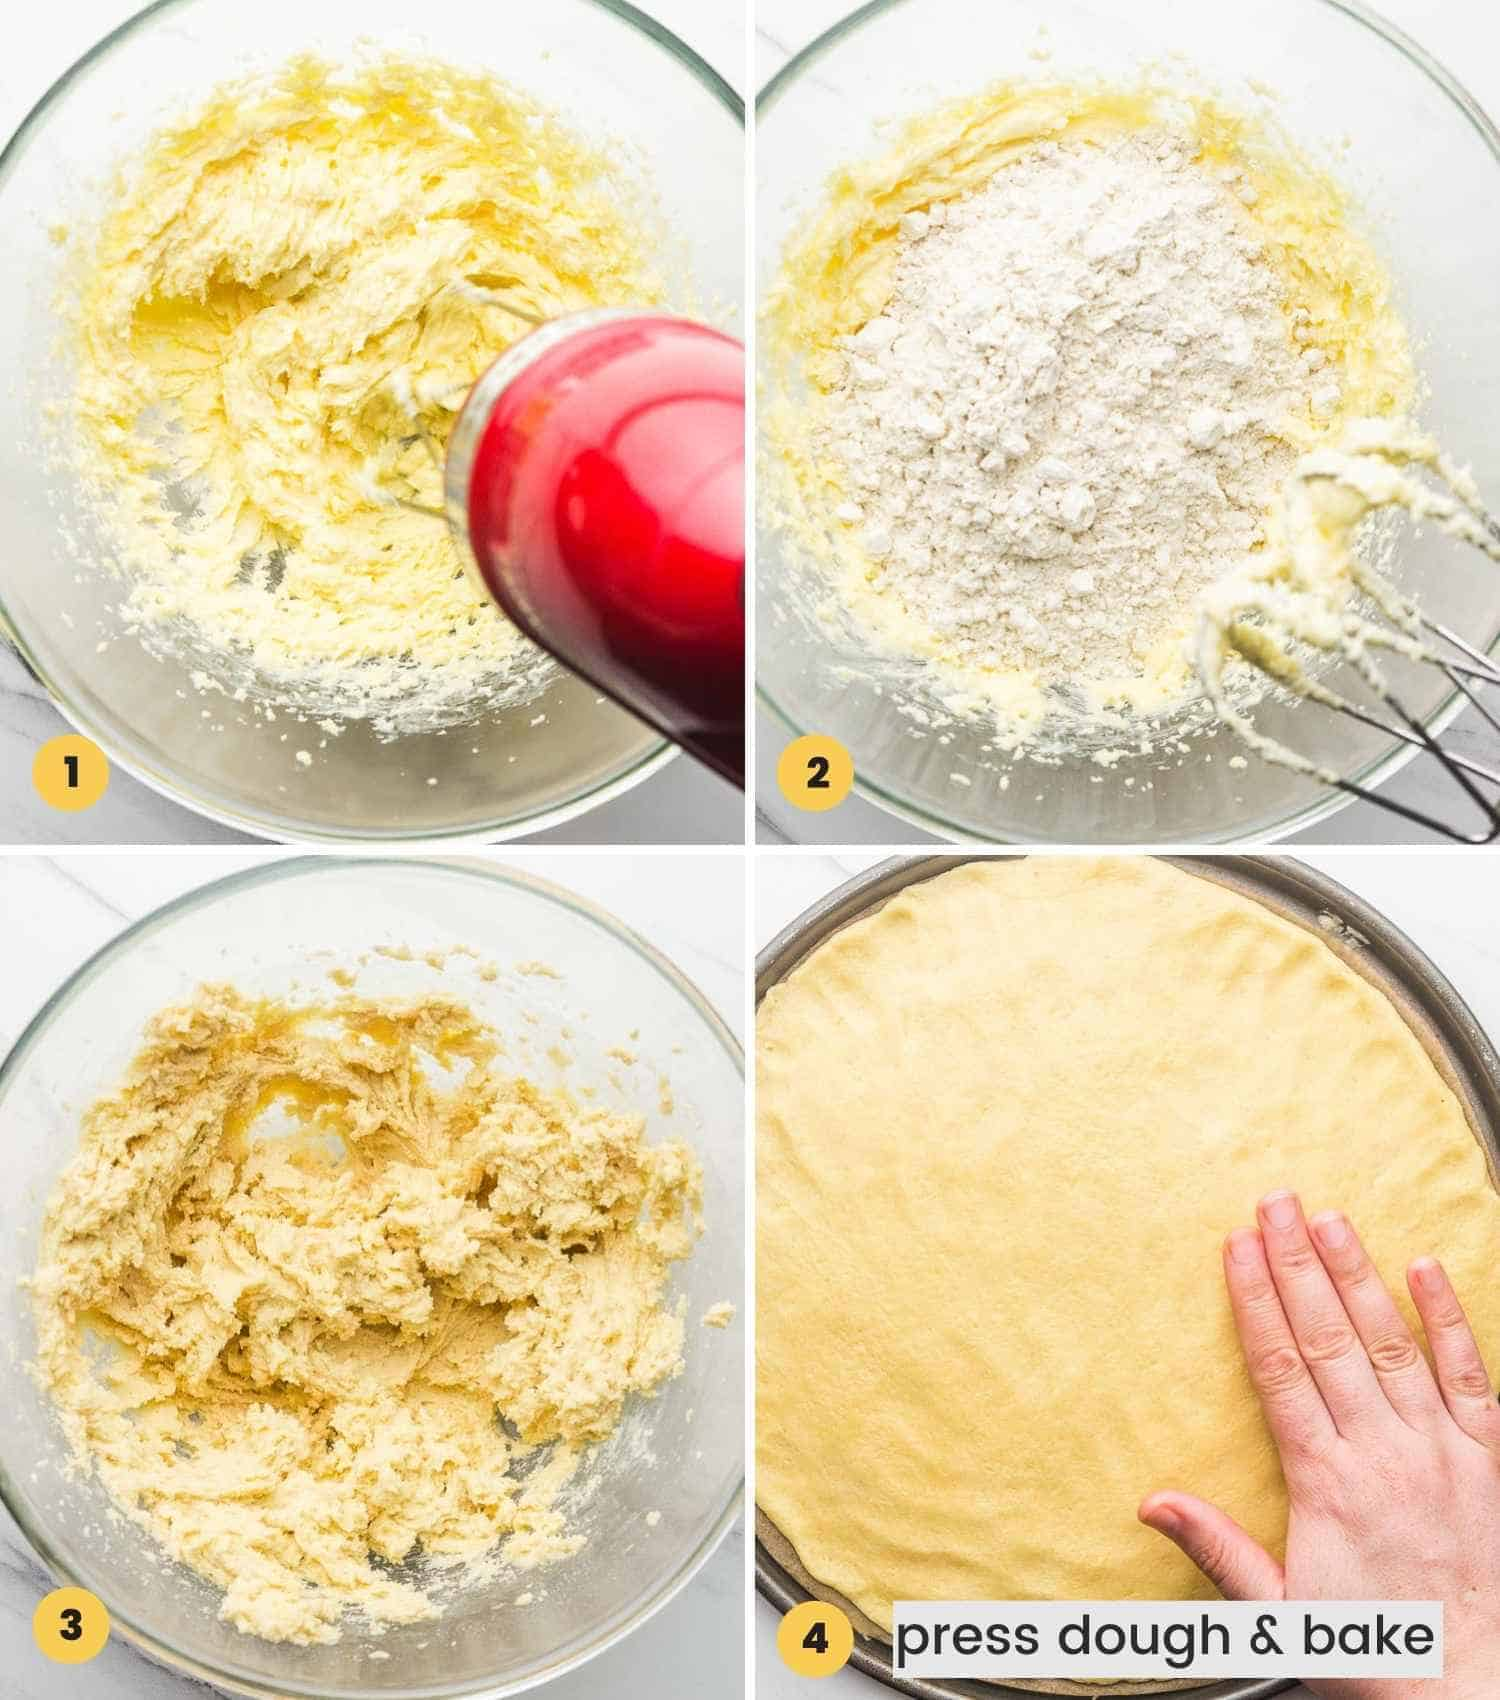 Copy of How to Make Cookie dough for Fruit Pizza, a collage with 4 images